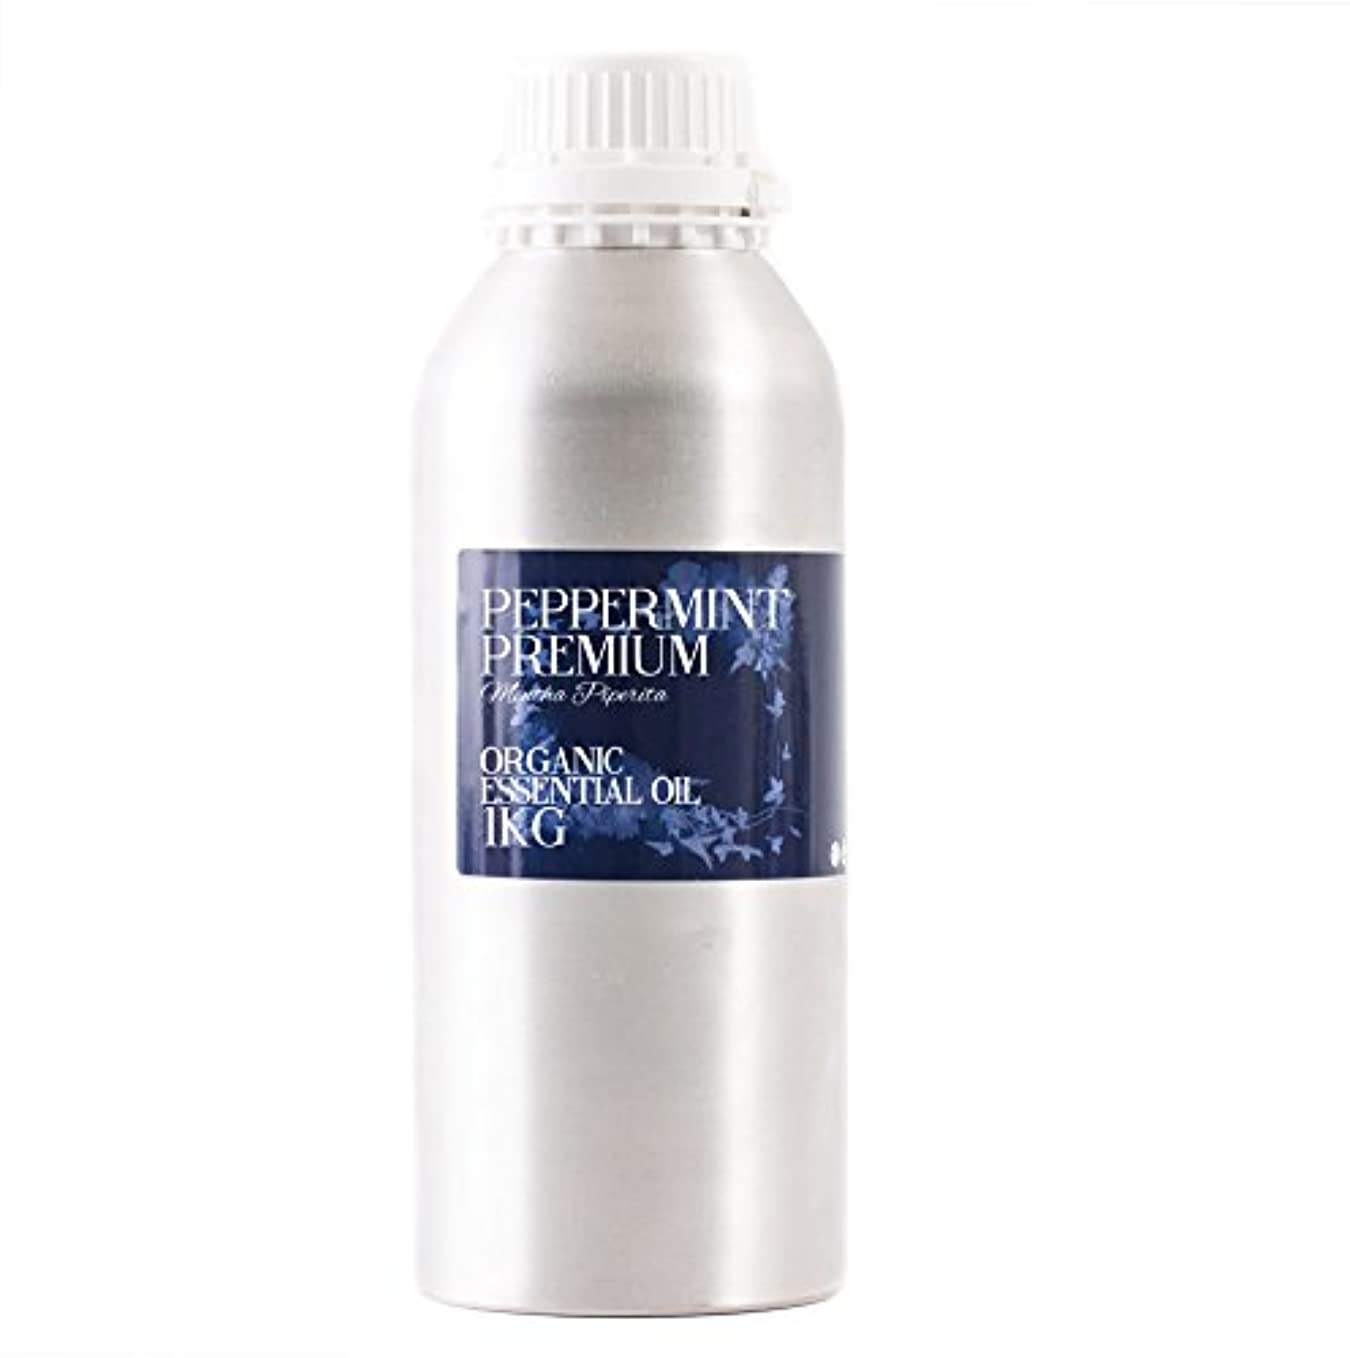 圧縮ベスビオ山アーサーコナンドイルMystic Moments | Peppermint Premium Organic Essential Oil - 1Kg - 100% Pure